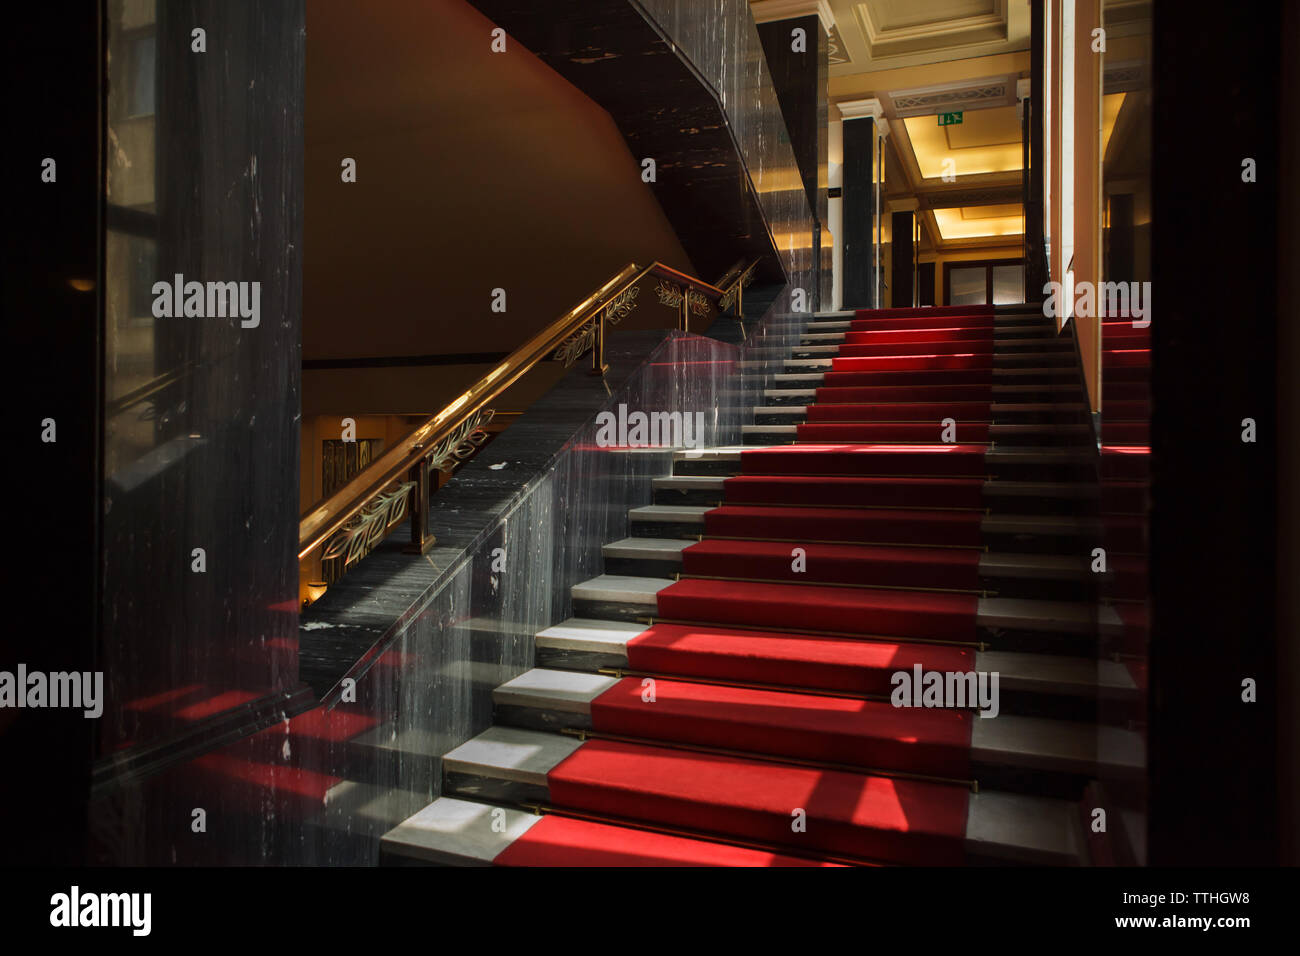 Main staircase in the Hotel International in Dejvice district in Prague, Czech Republic. The hotel inspired by Soviet Stalinist architecture was designed by Czech architect František Jeřábek and built in 1952-1956. The staircase railing was designed and manufactured by Czech artist Jan Nušl. Stock Photo